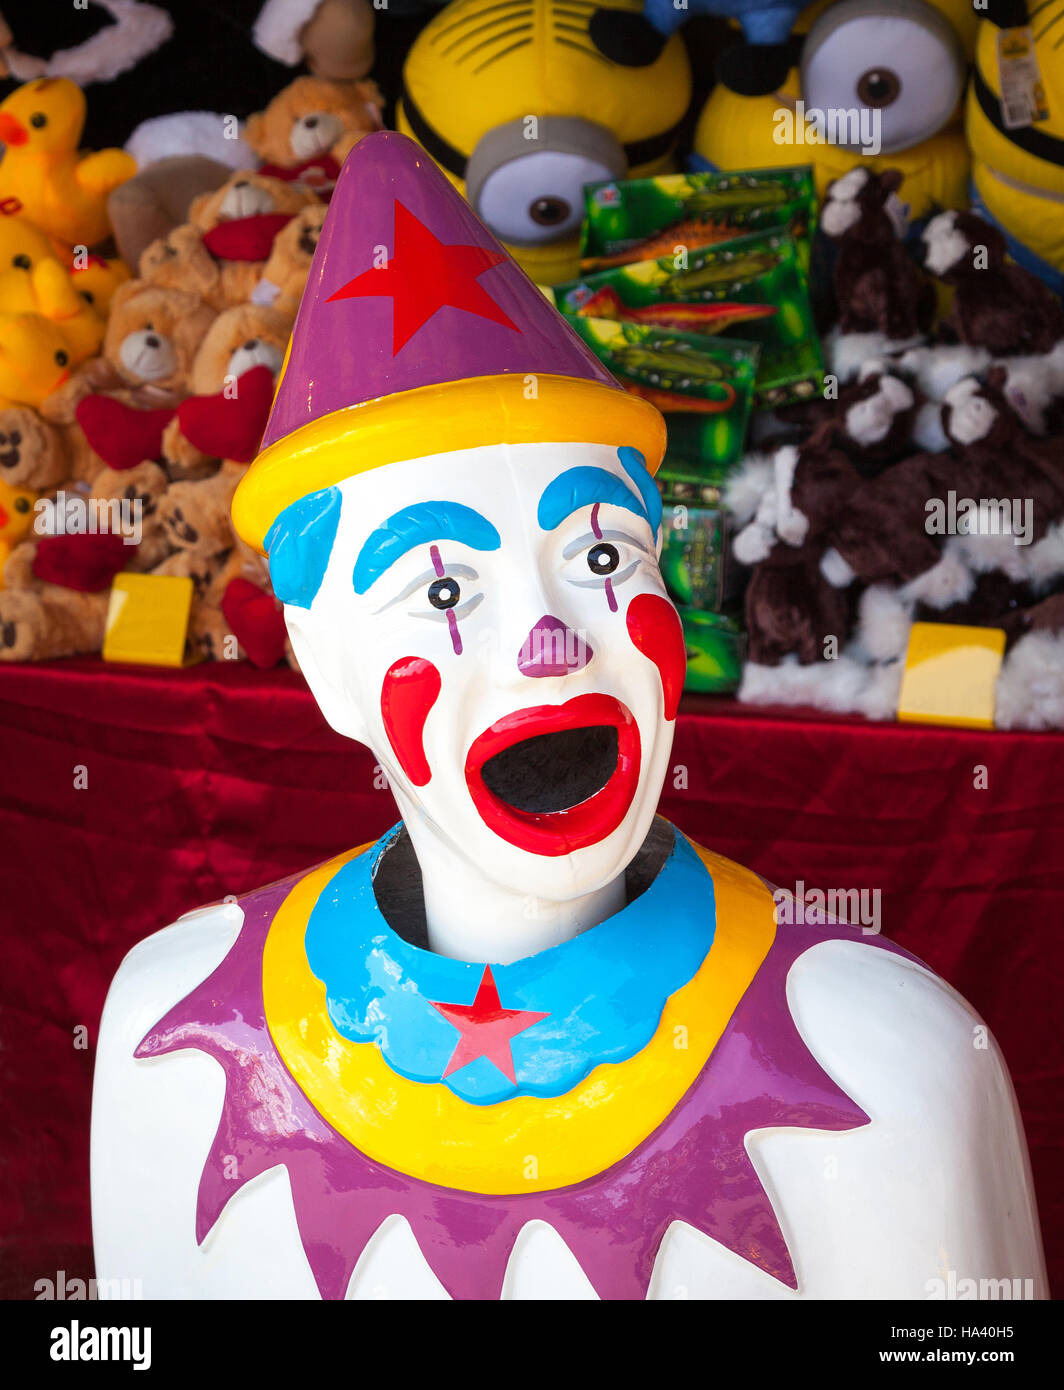 A colorful arcade clown with prizes stacked behind him. - Stock Image